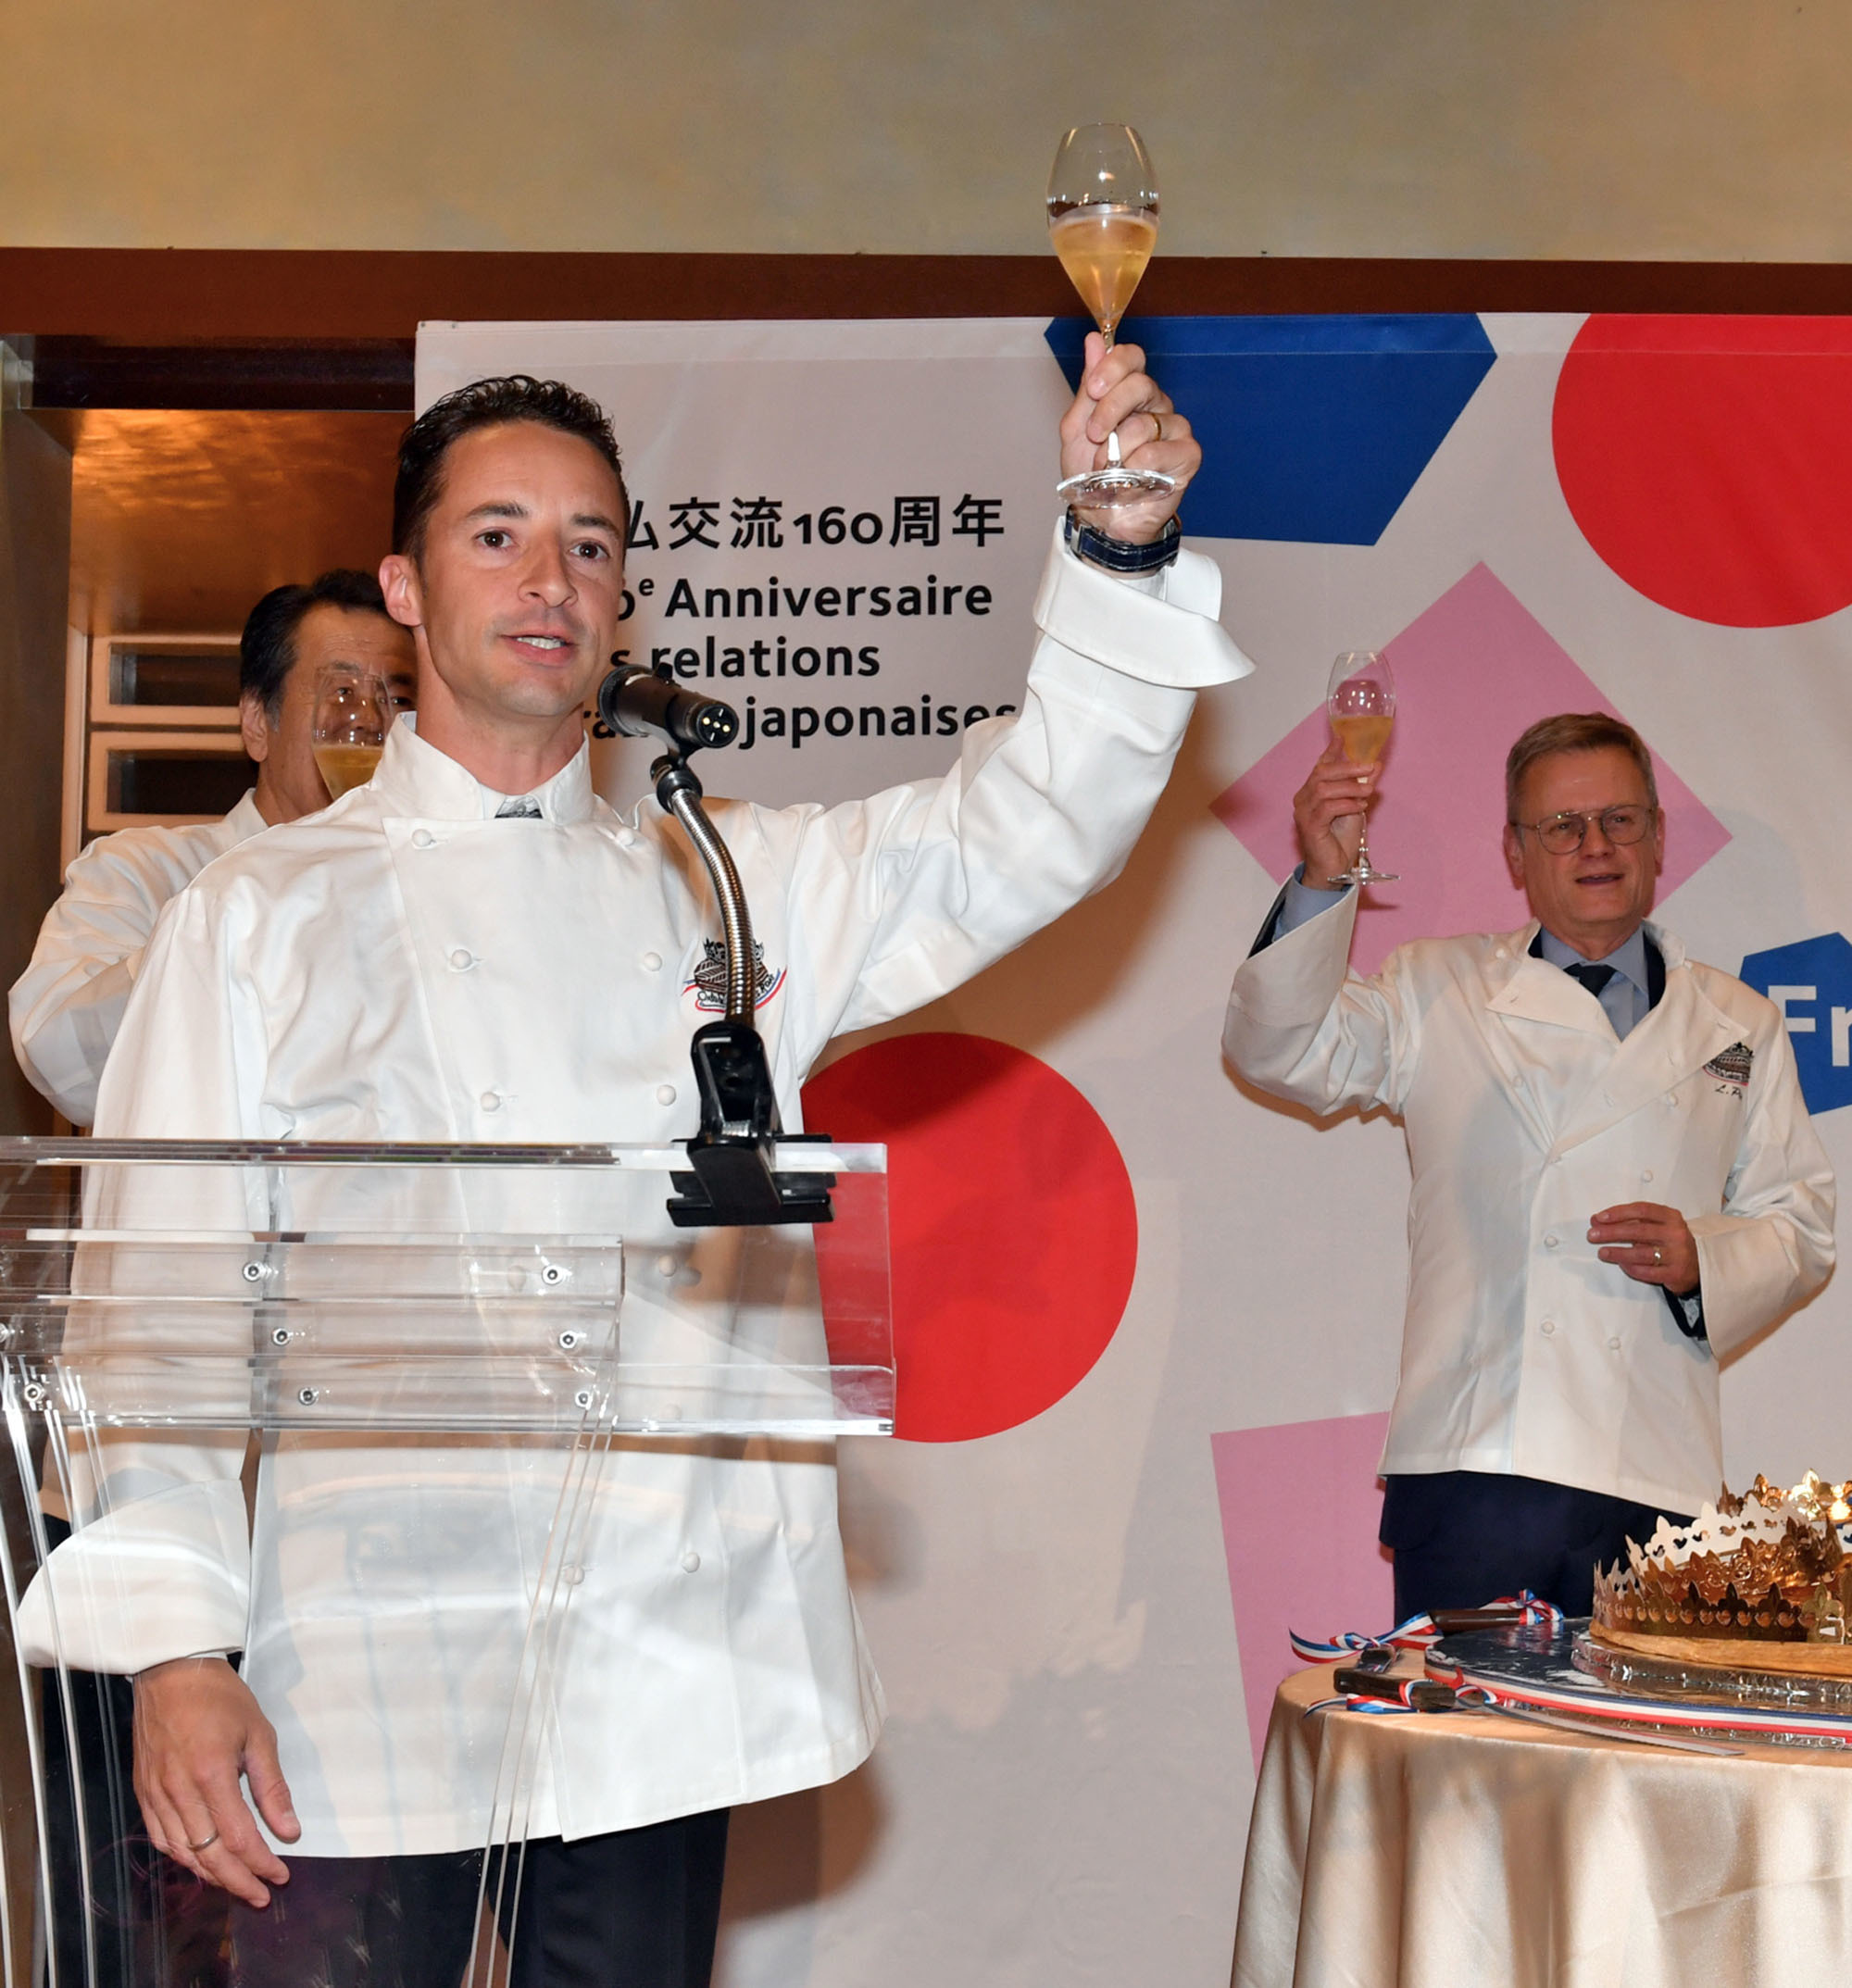 Lemaire leads a toast at the event. |  YOSHIAKI MIURA